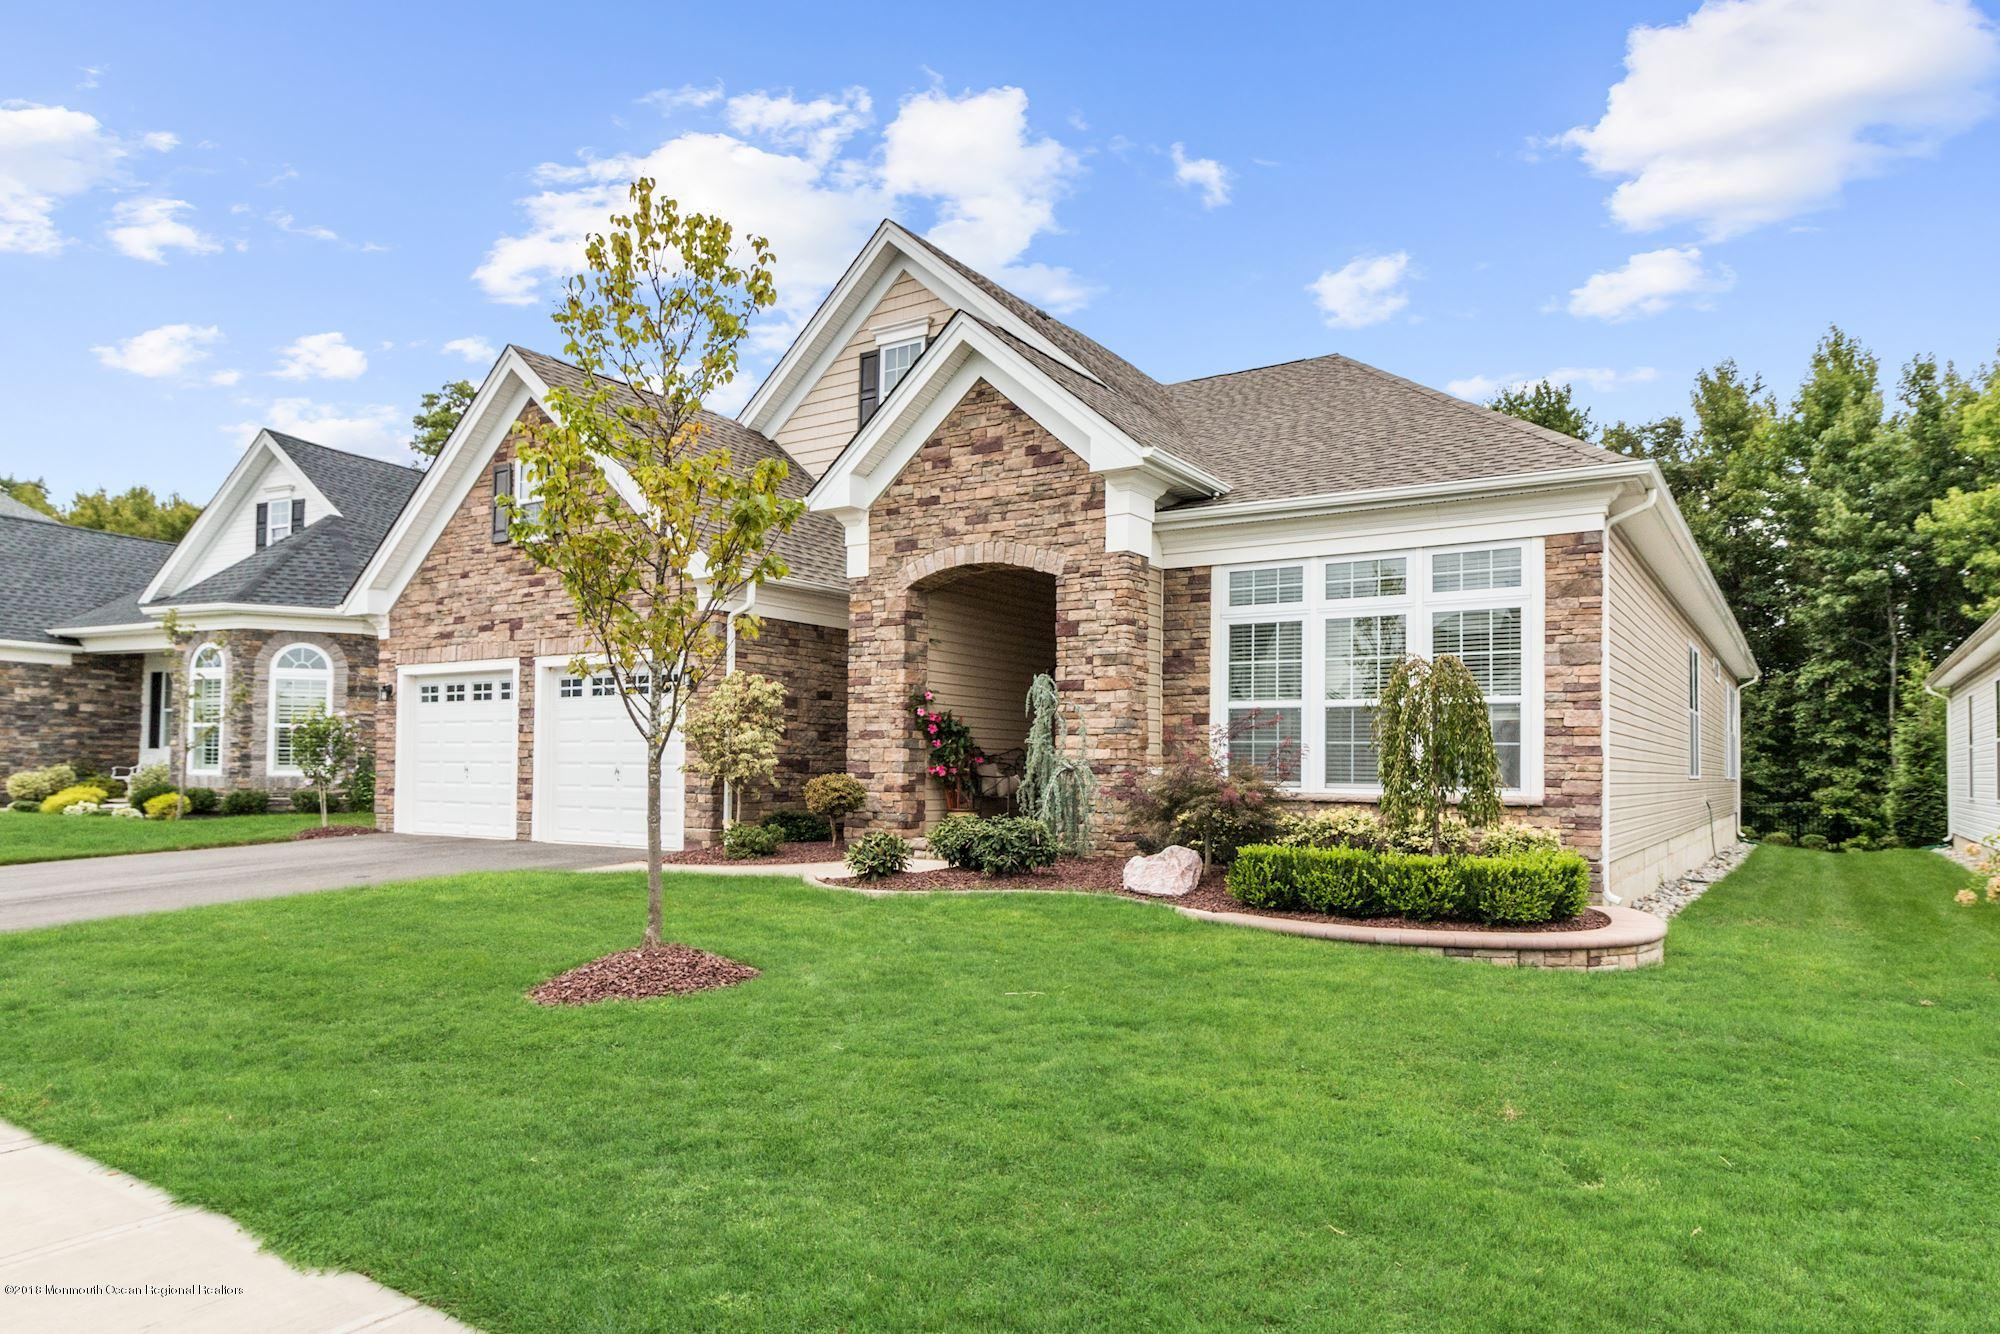 001_94_Tournament_Dr_243308_371706